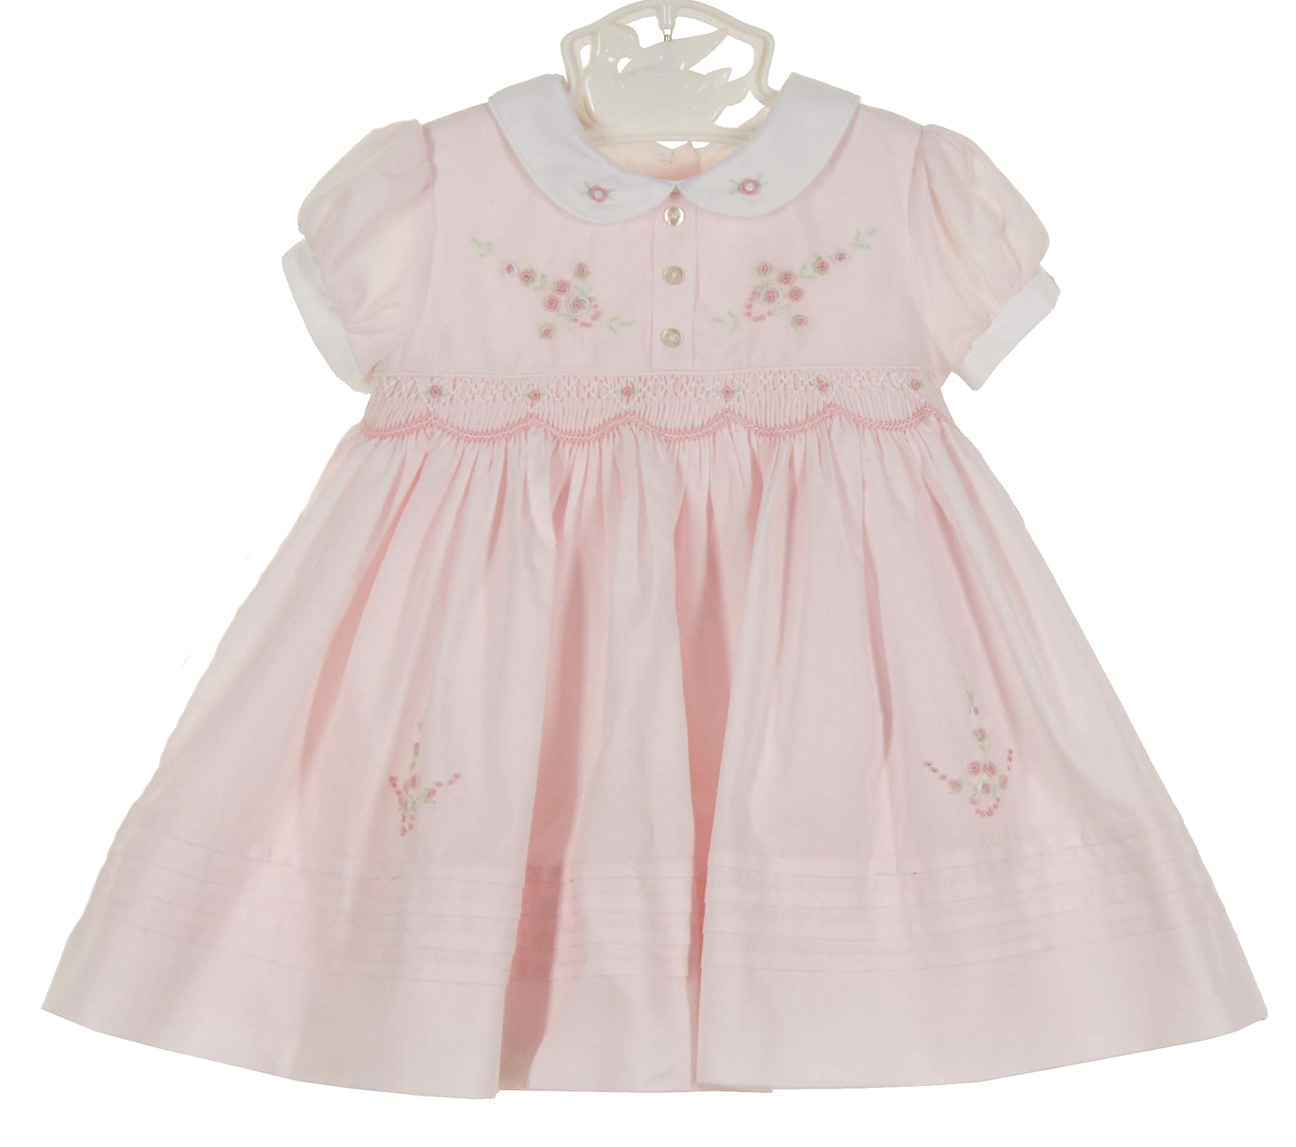 Sarah Louise Vintage Style Pink Smocked Dress Vintage